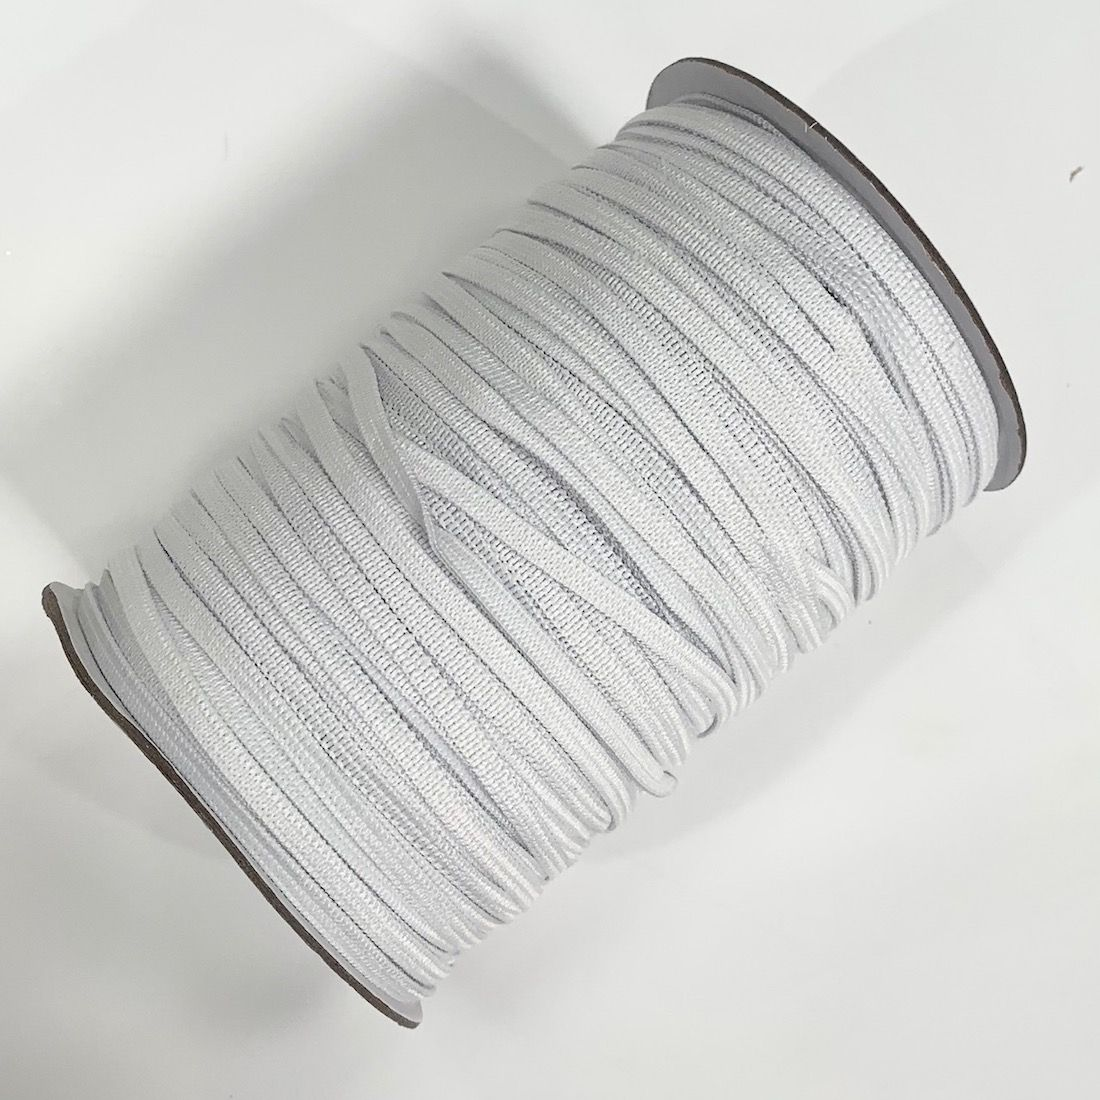 145m Roll Of Flat White 3mm Elastic For Face Masks